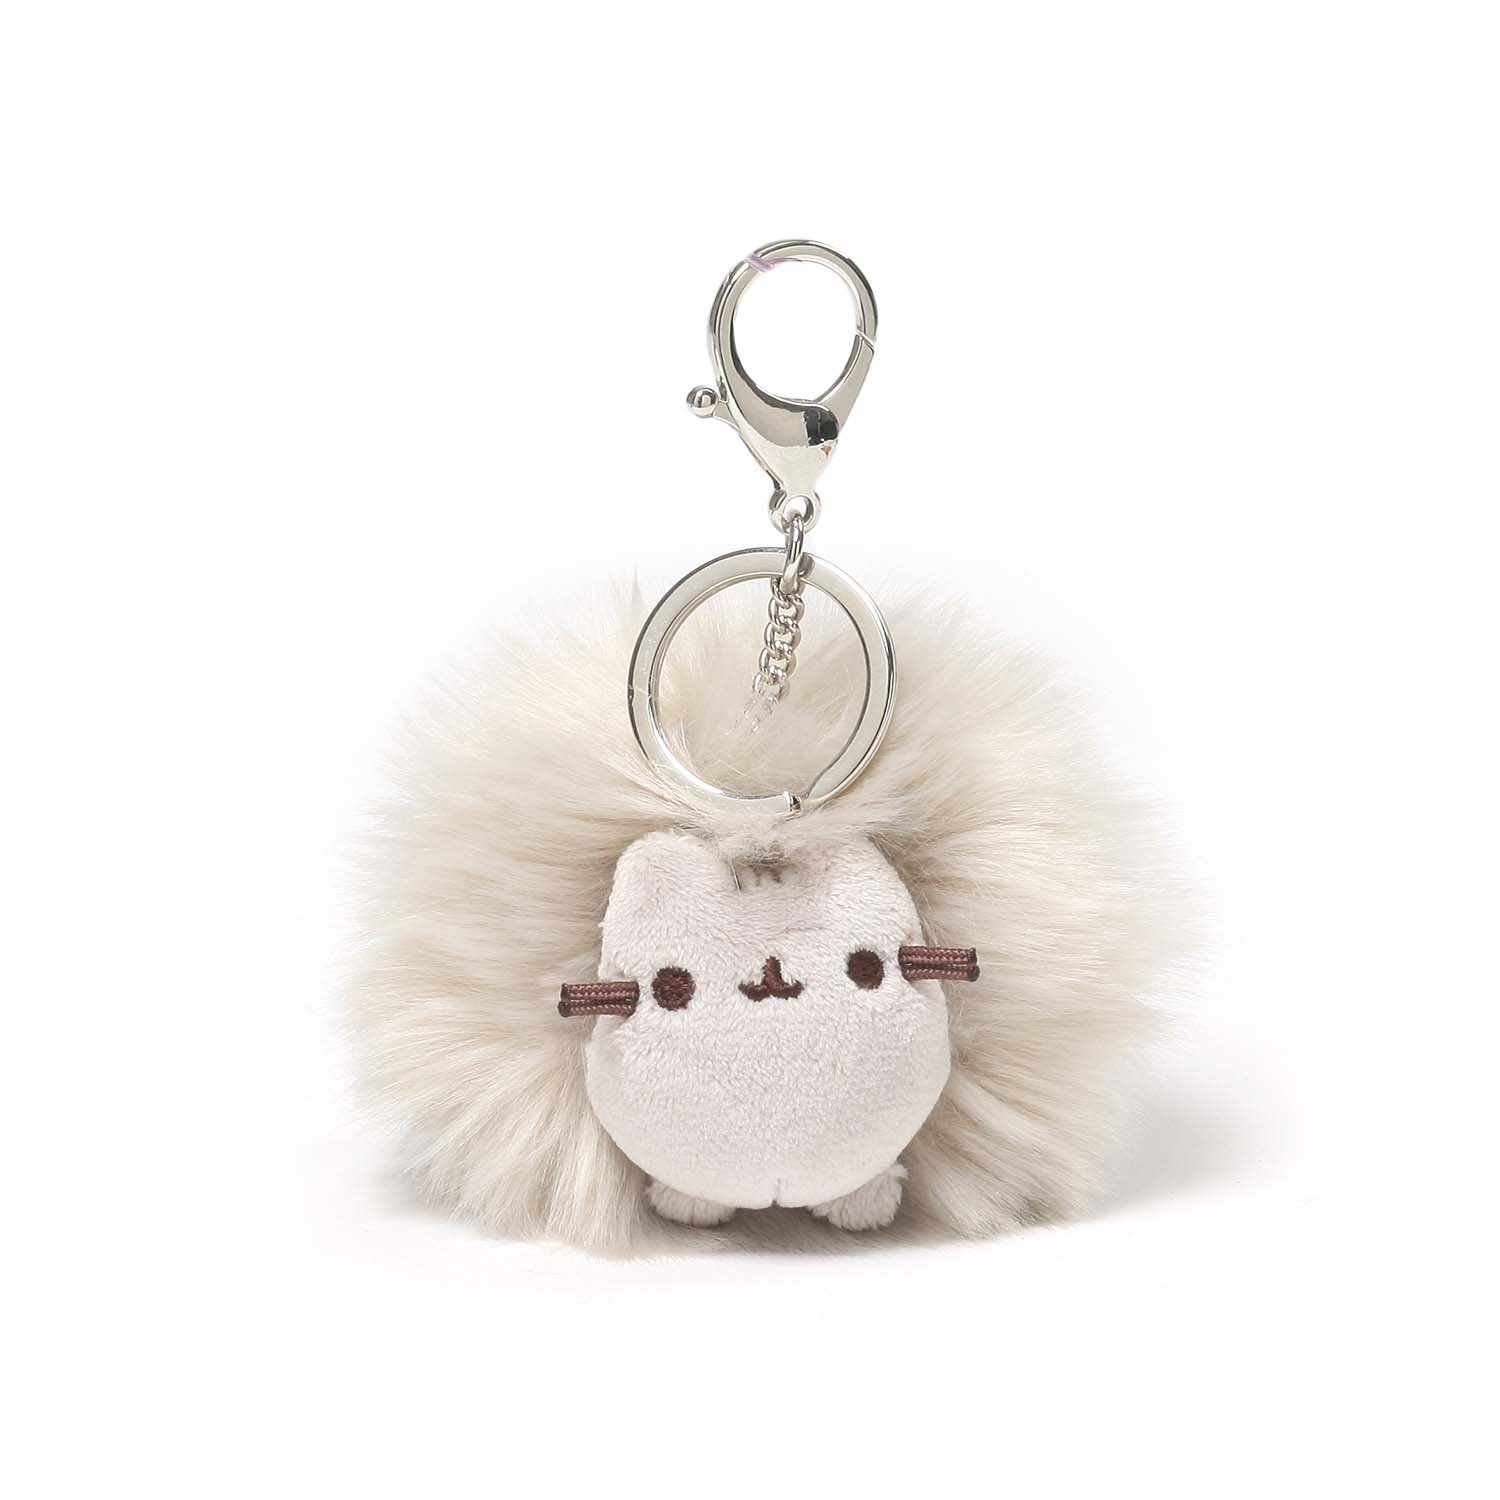 Pusheen keychain - Pusheen Gift Guide